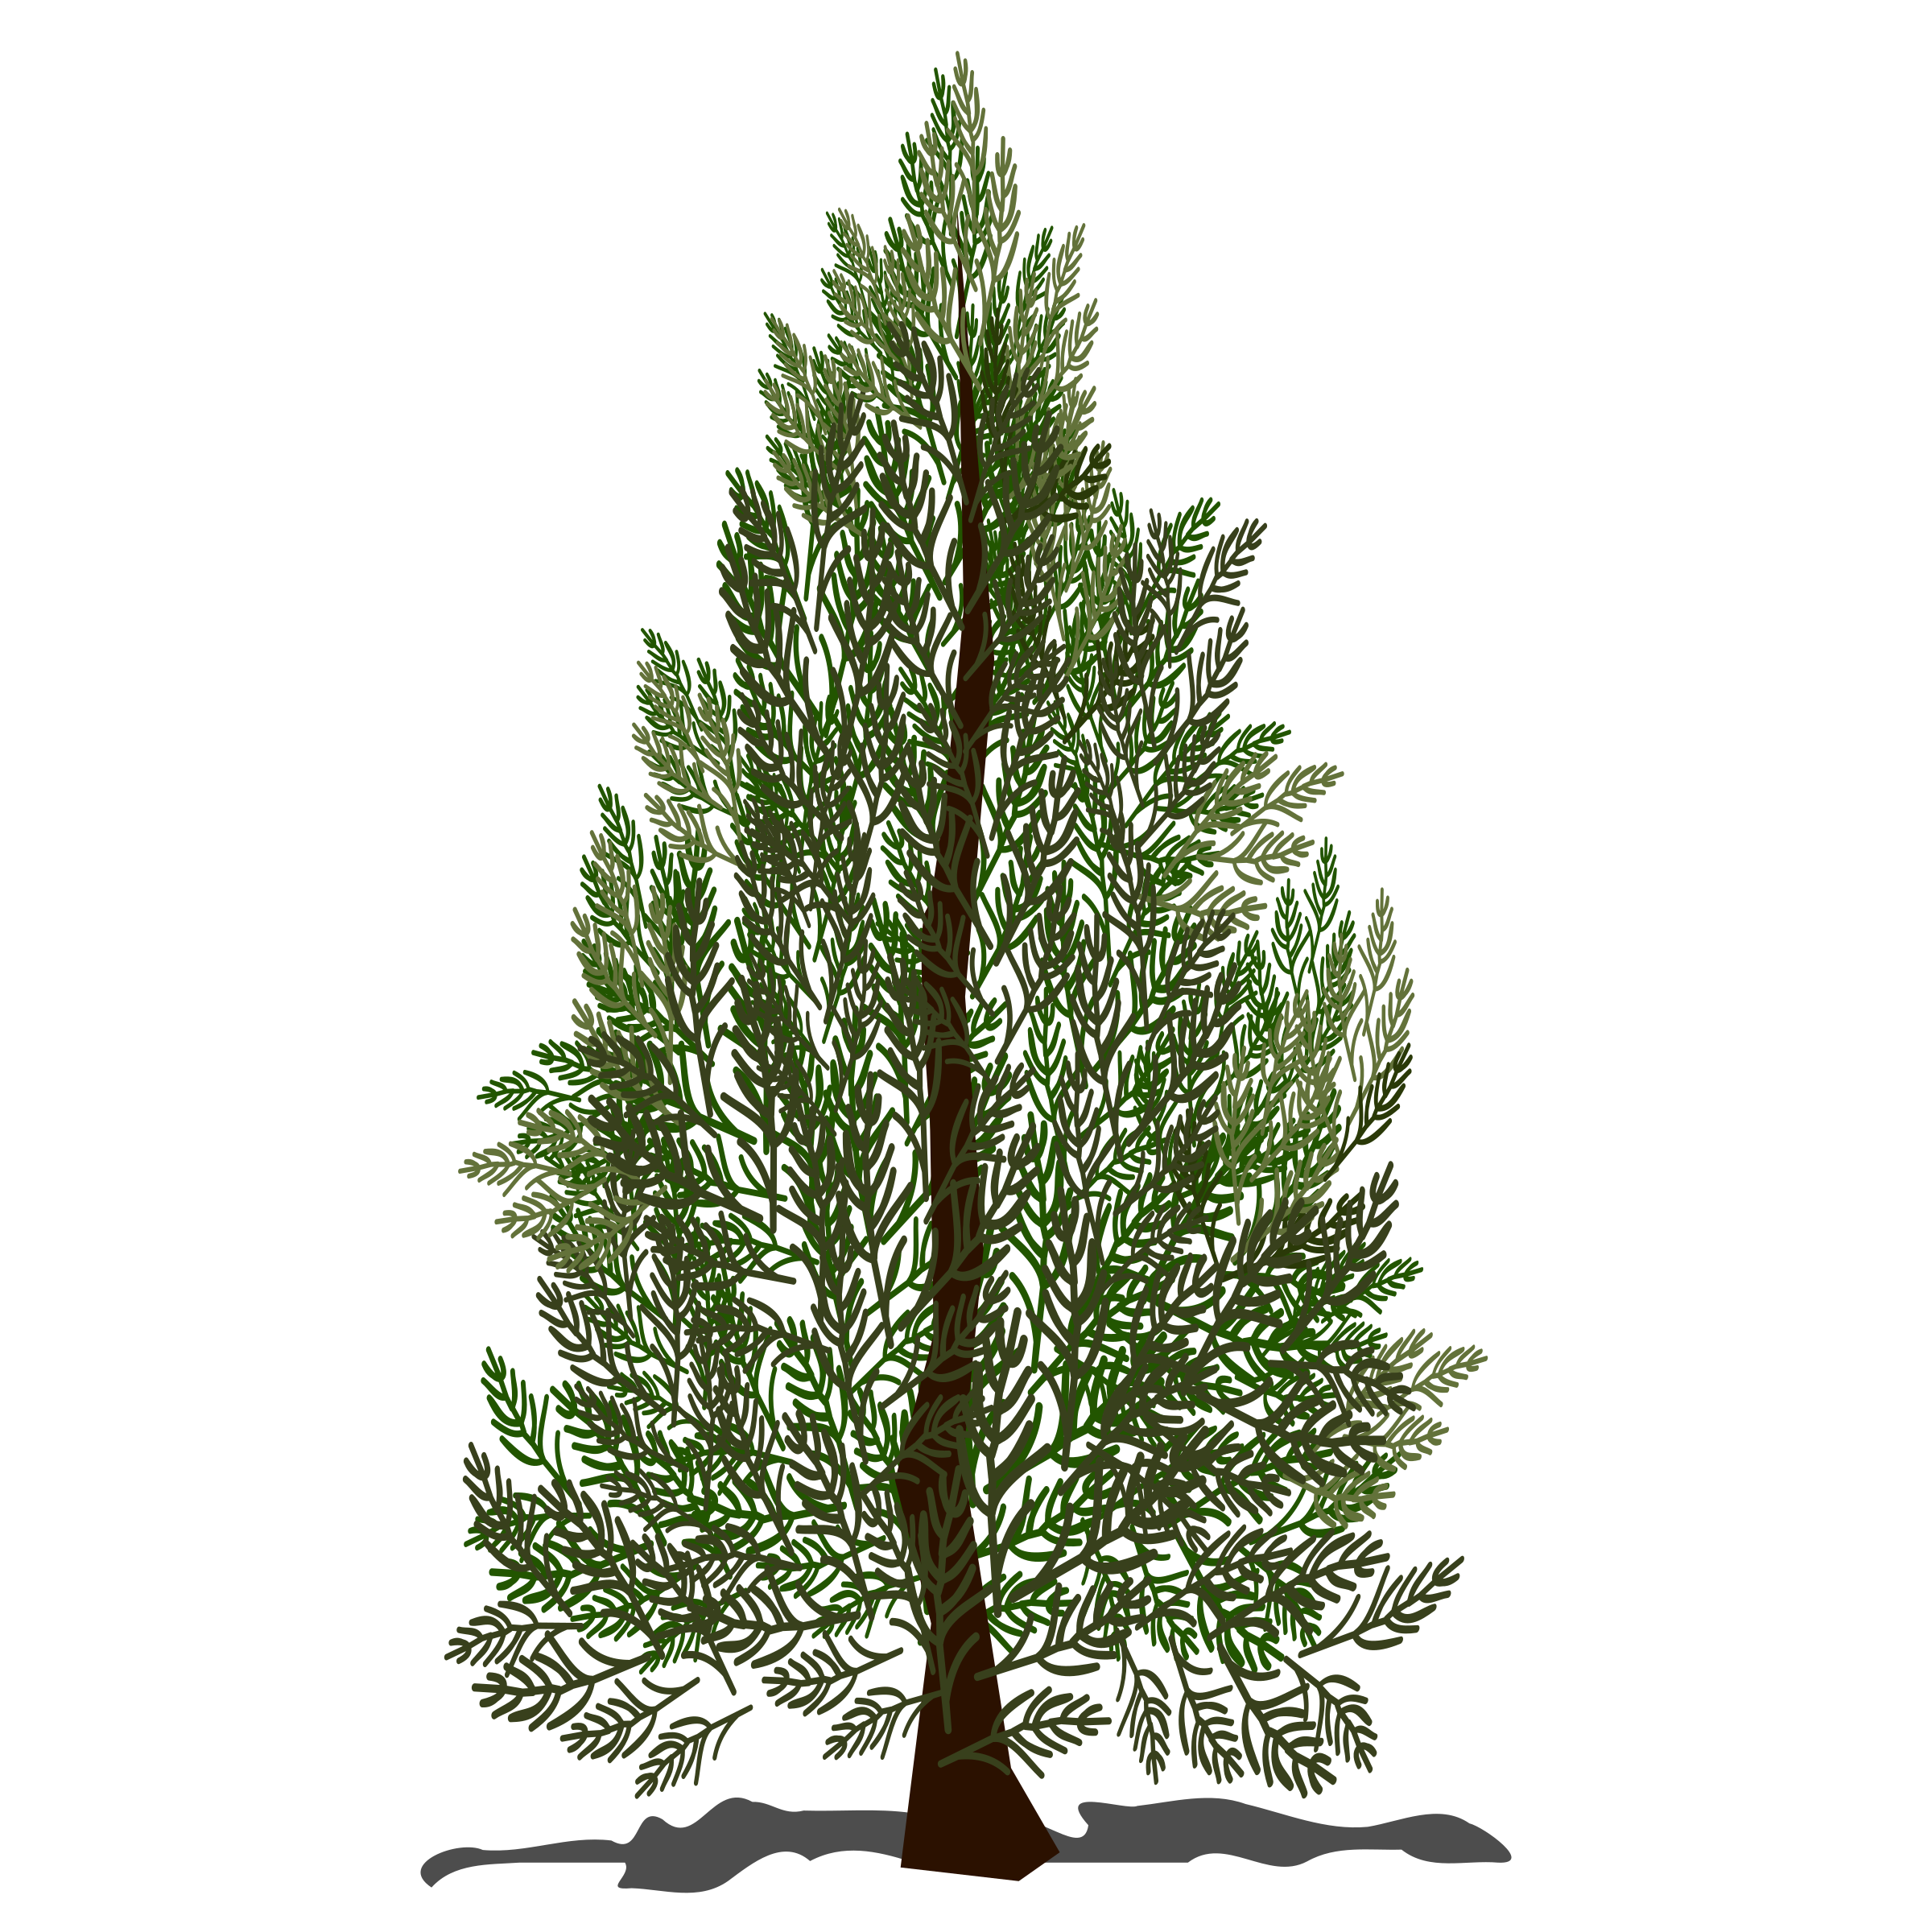 Pine big image png. Tree clipart evergreen